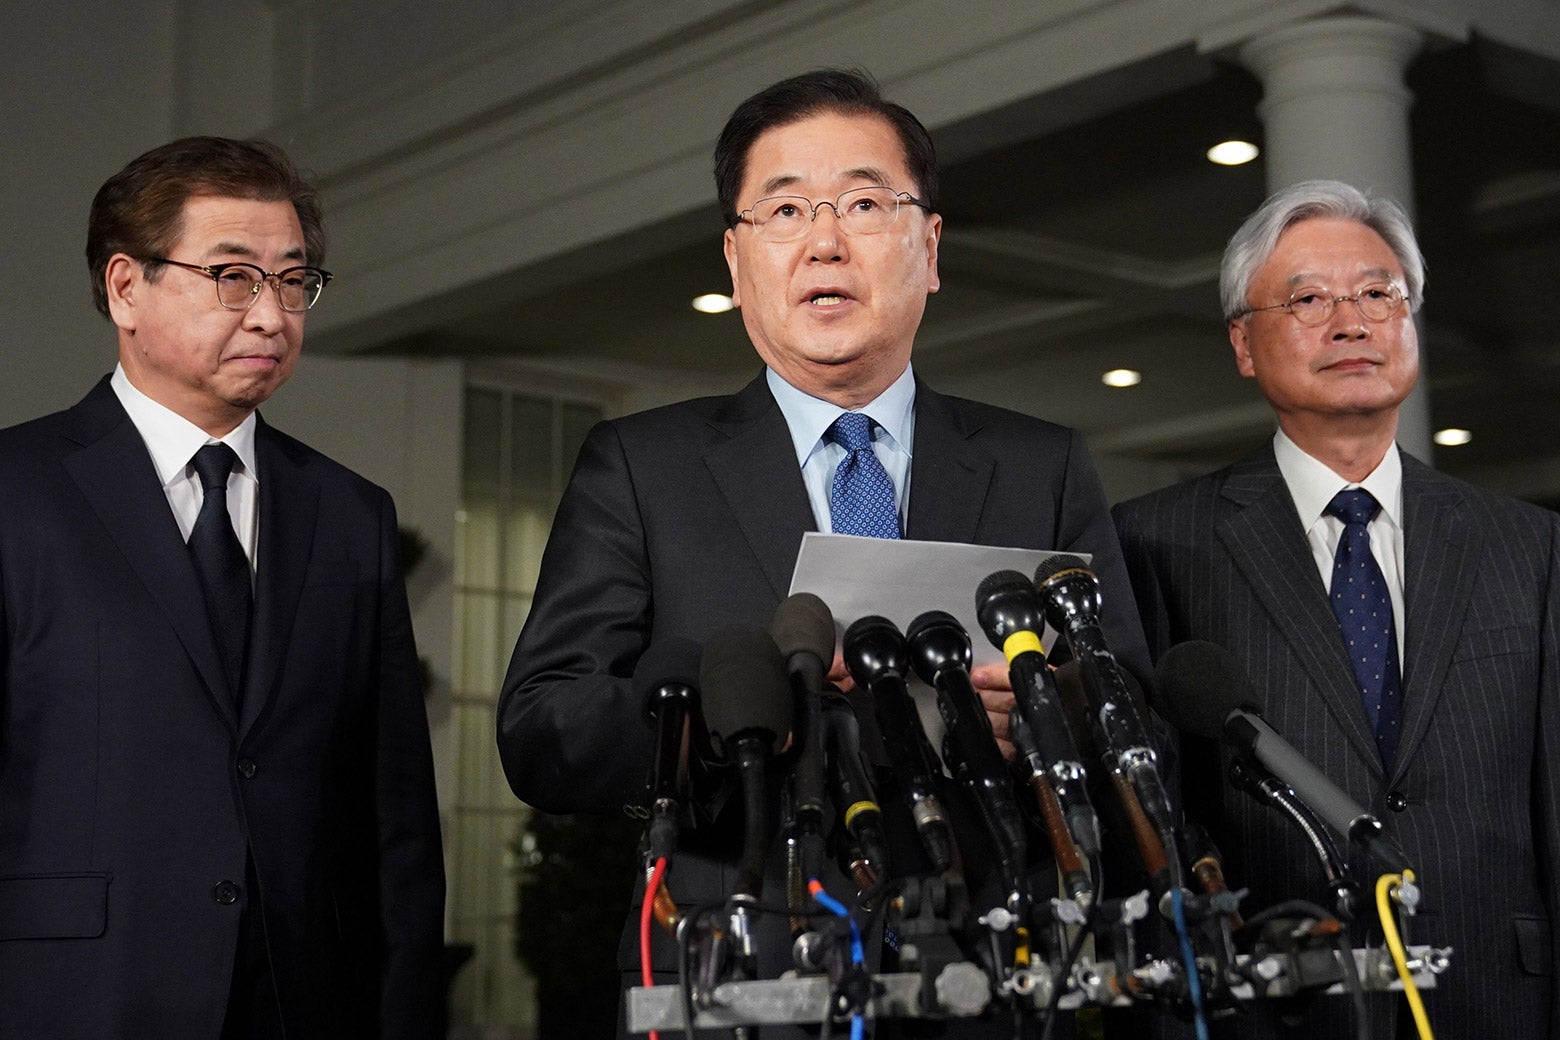 South Korean National Security Advisor Chung Eui-yong (C), flanked by South Korea National Intelligence Service chief Suh Hoon (L) and South Korea's ambassador to the United States Cho Yoon-je (R), briefs reporters outside the West Wing of the White House on Mar. 8, 2018 in Washington, DC, announcing North Korean leader Kim Jong Un has offered to meet US President Donald Trump.